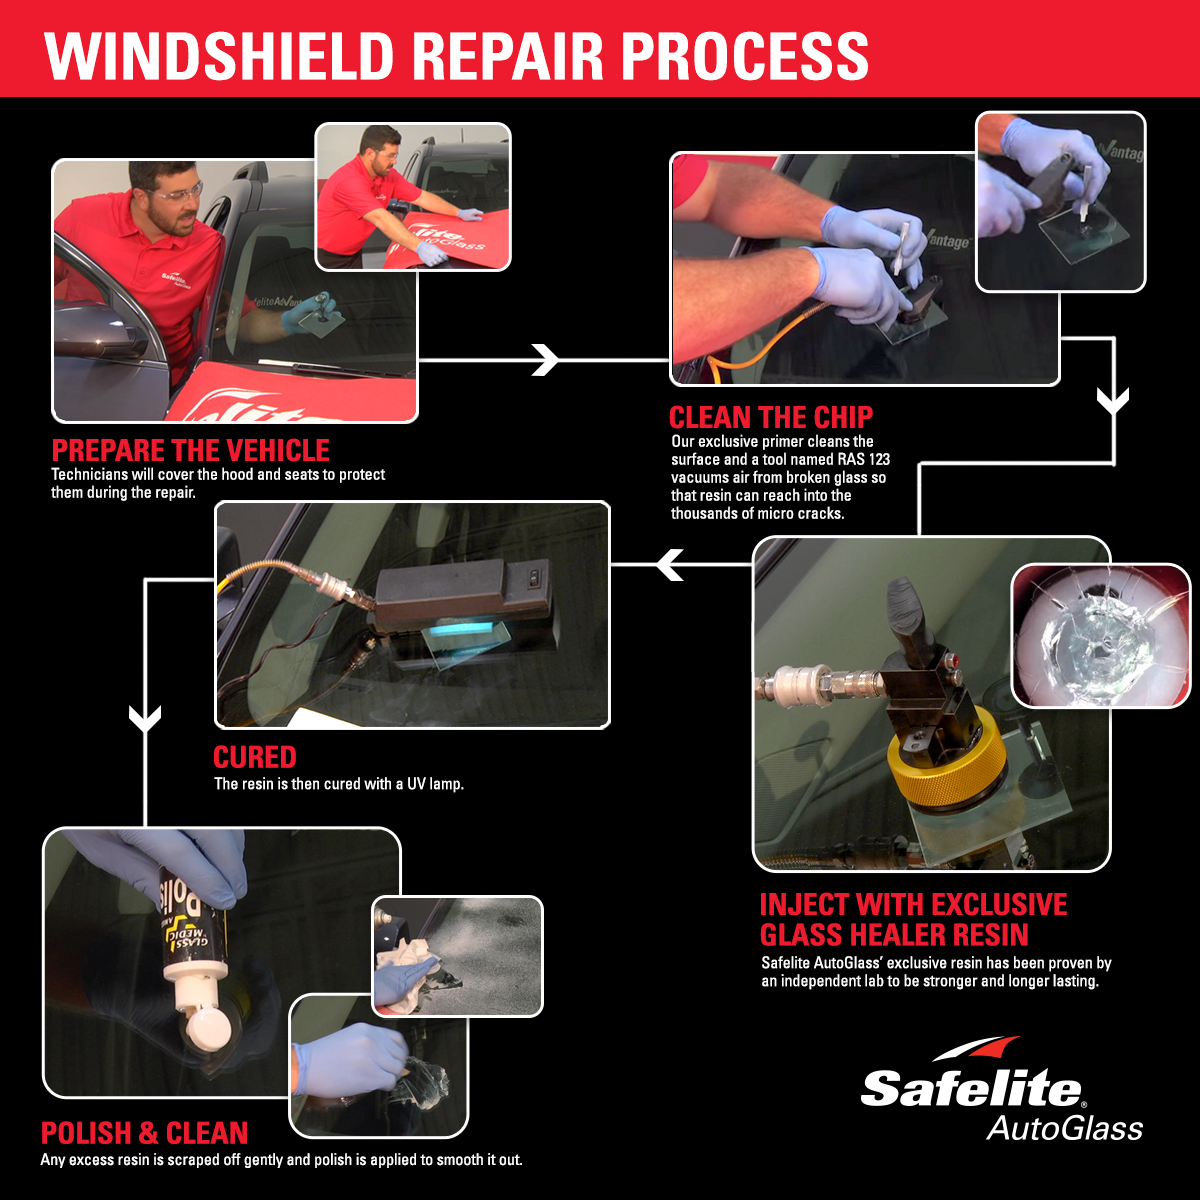 Here are the steps a Safelite technician takes to repair your cracked windshield.